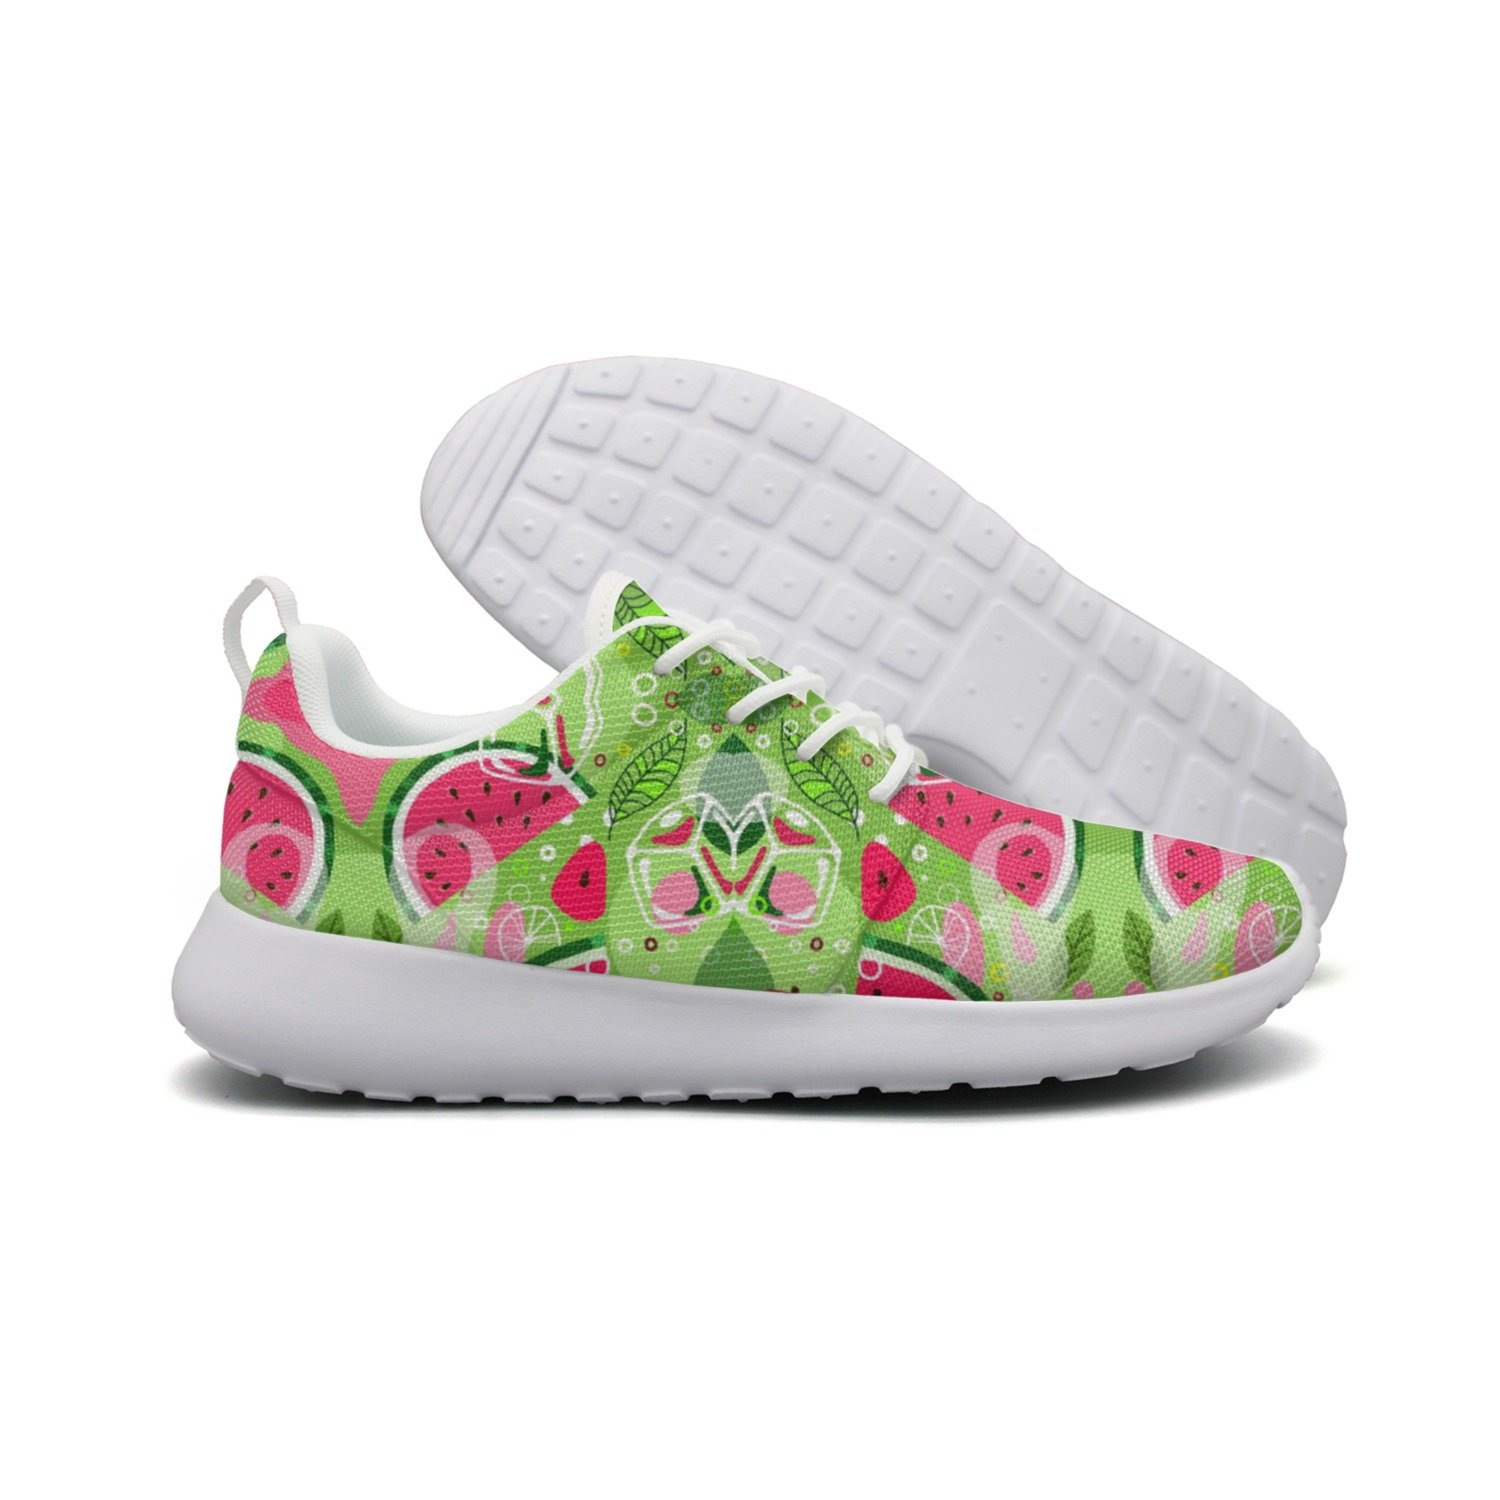 Men's Summer Ice Watermelon Running Shoes Fashion Sneakers Walking Shoes by HDIAOnaAO